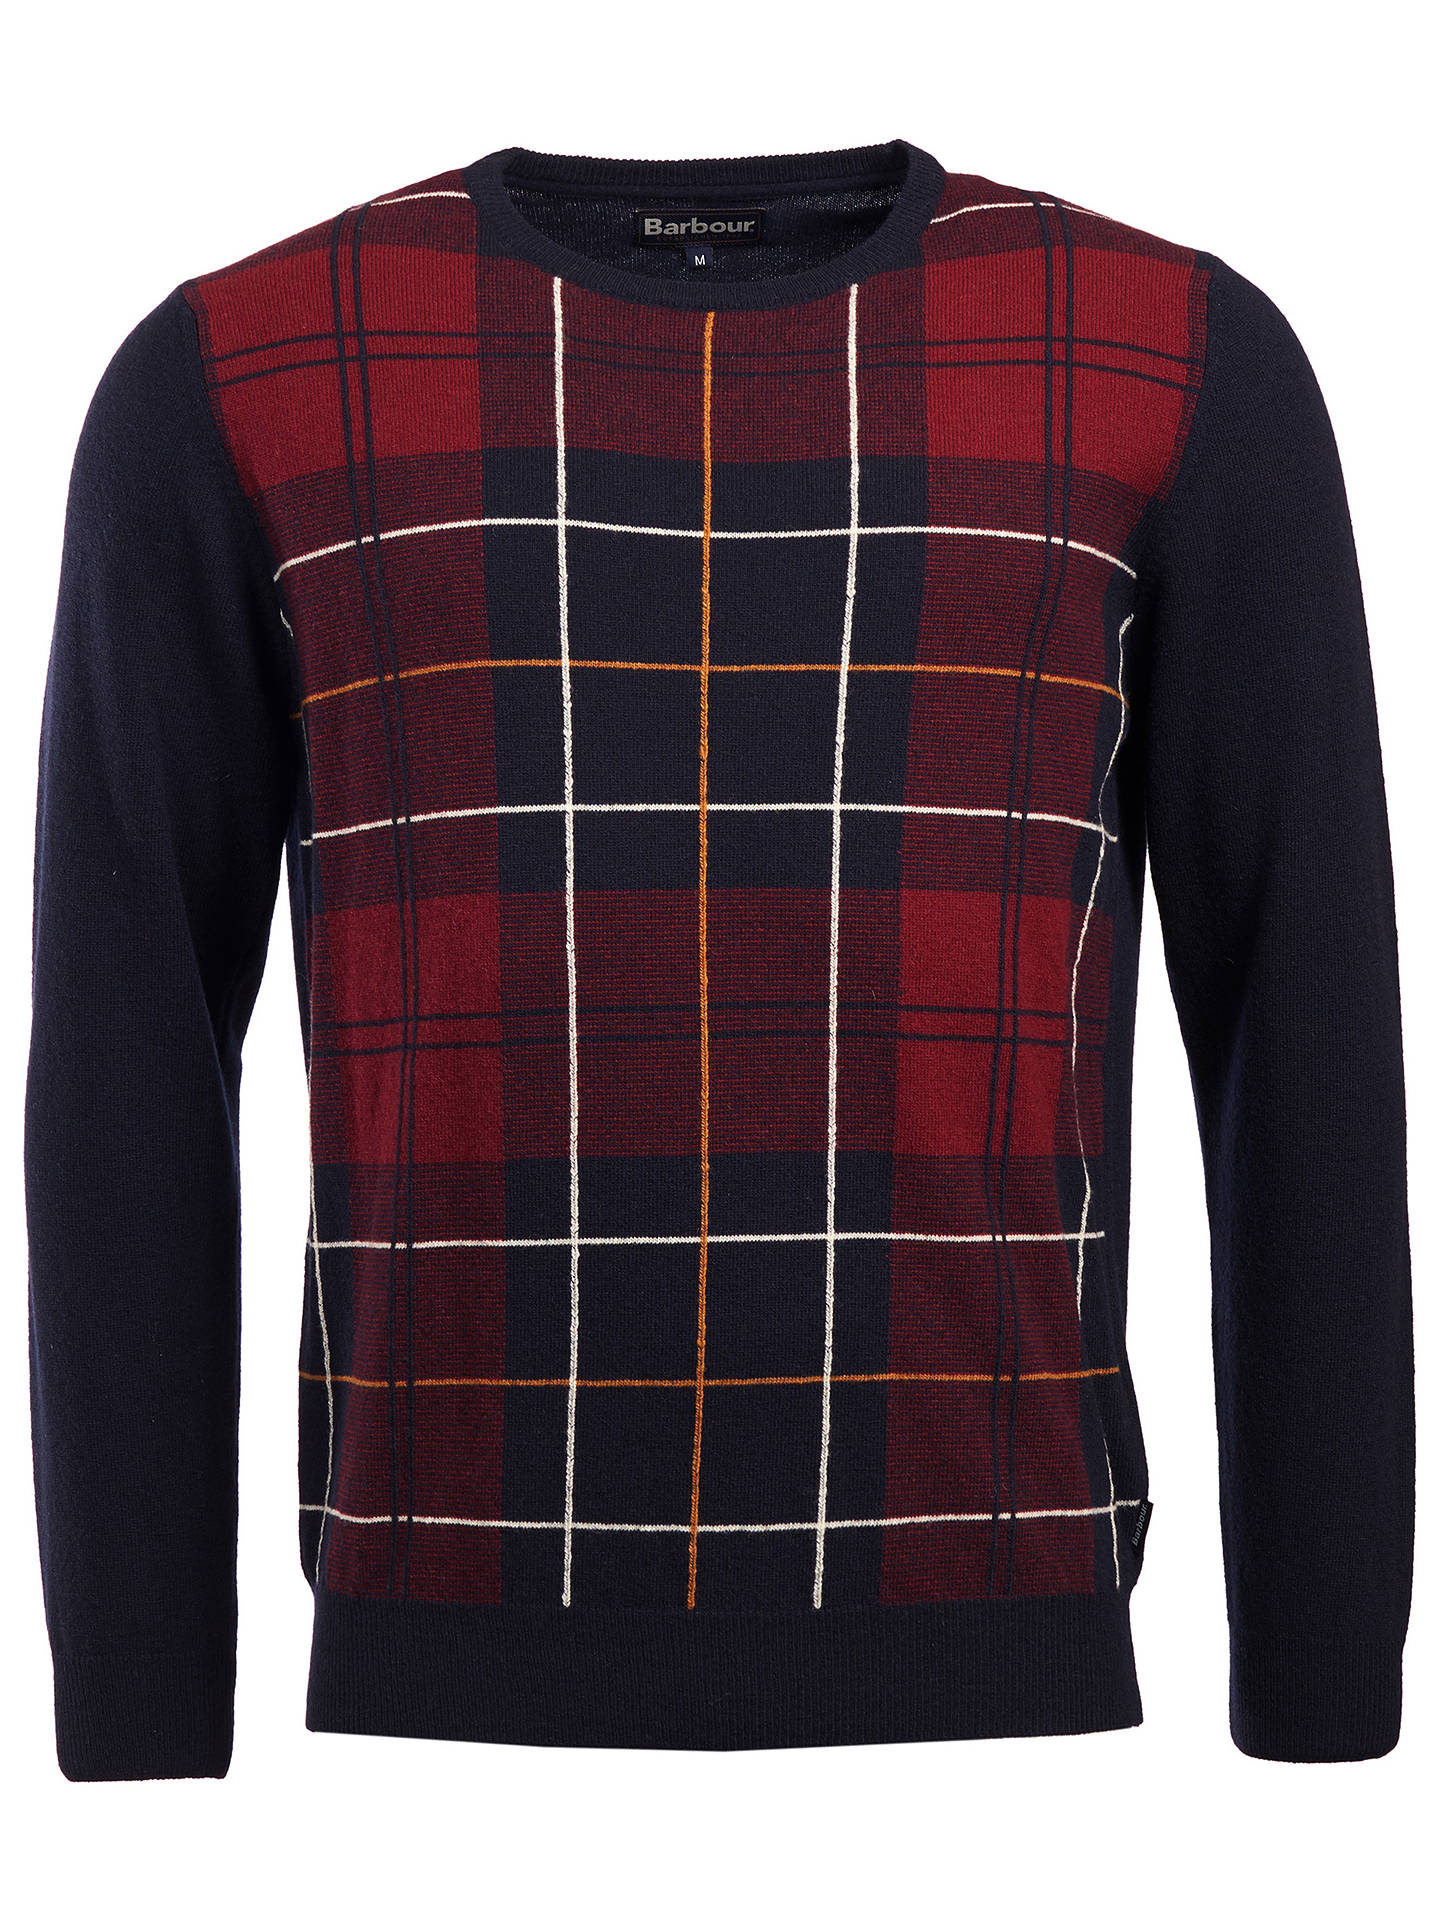 BuyBarbour Coldwater Crew Neck Jumper, Multi, M Online at johnlewis.com